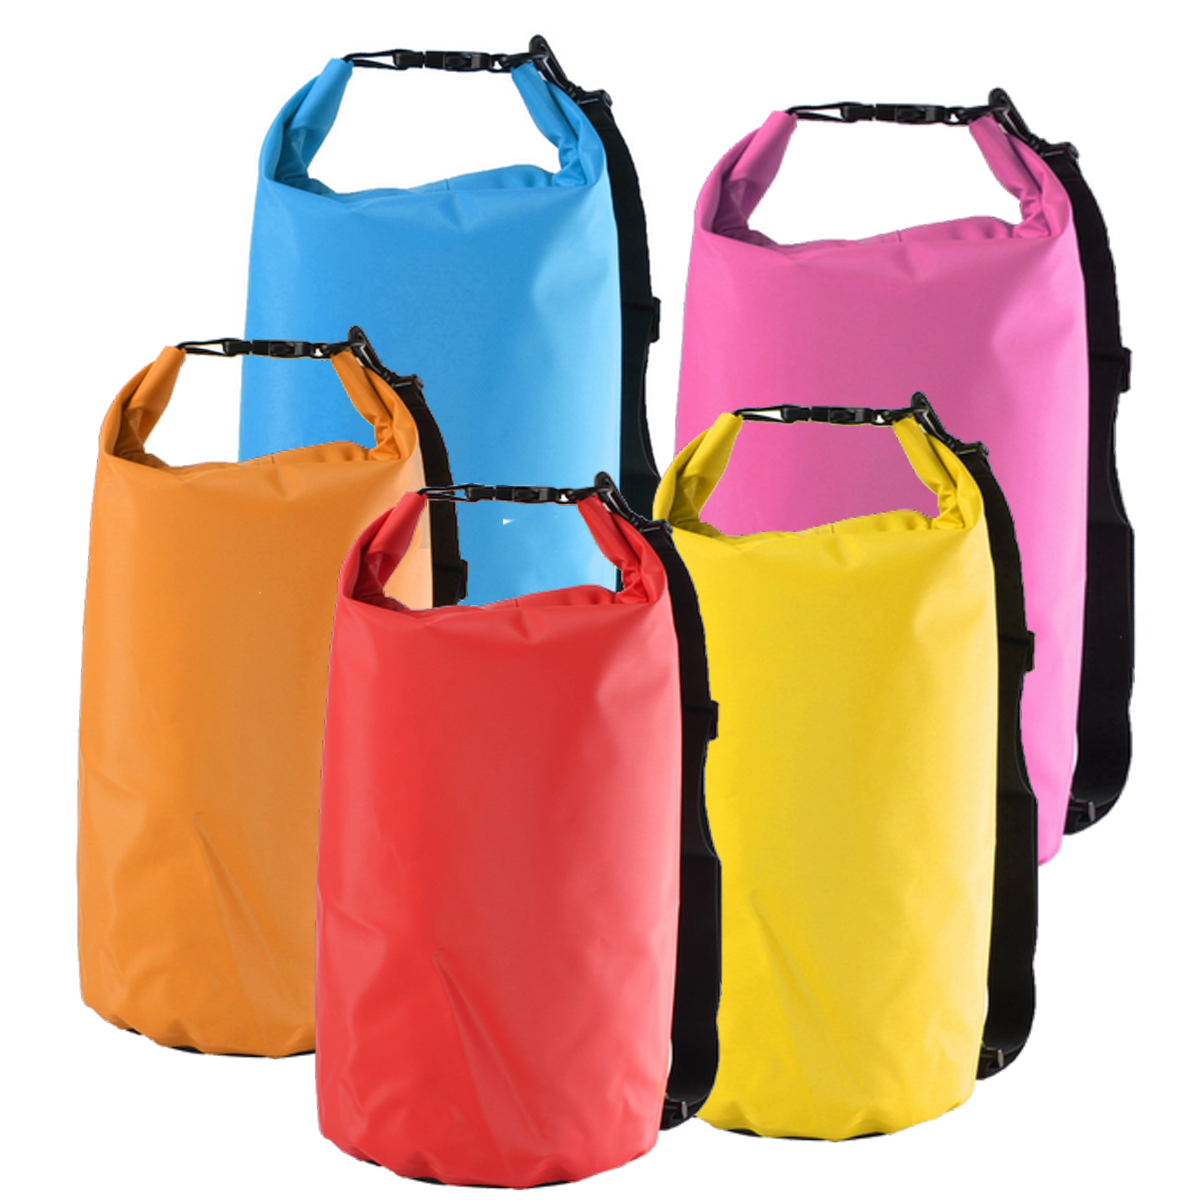 15L Waterproof Dry Bag Sack For Camping Hiking Canoe Kayak ...